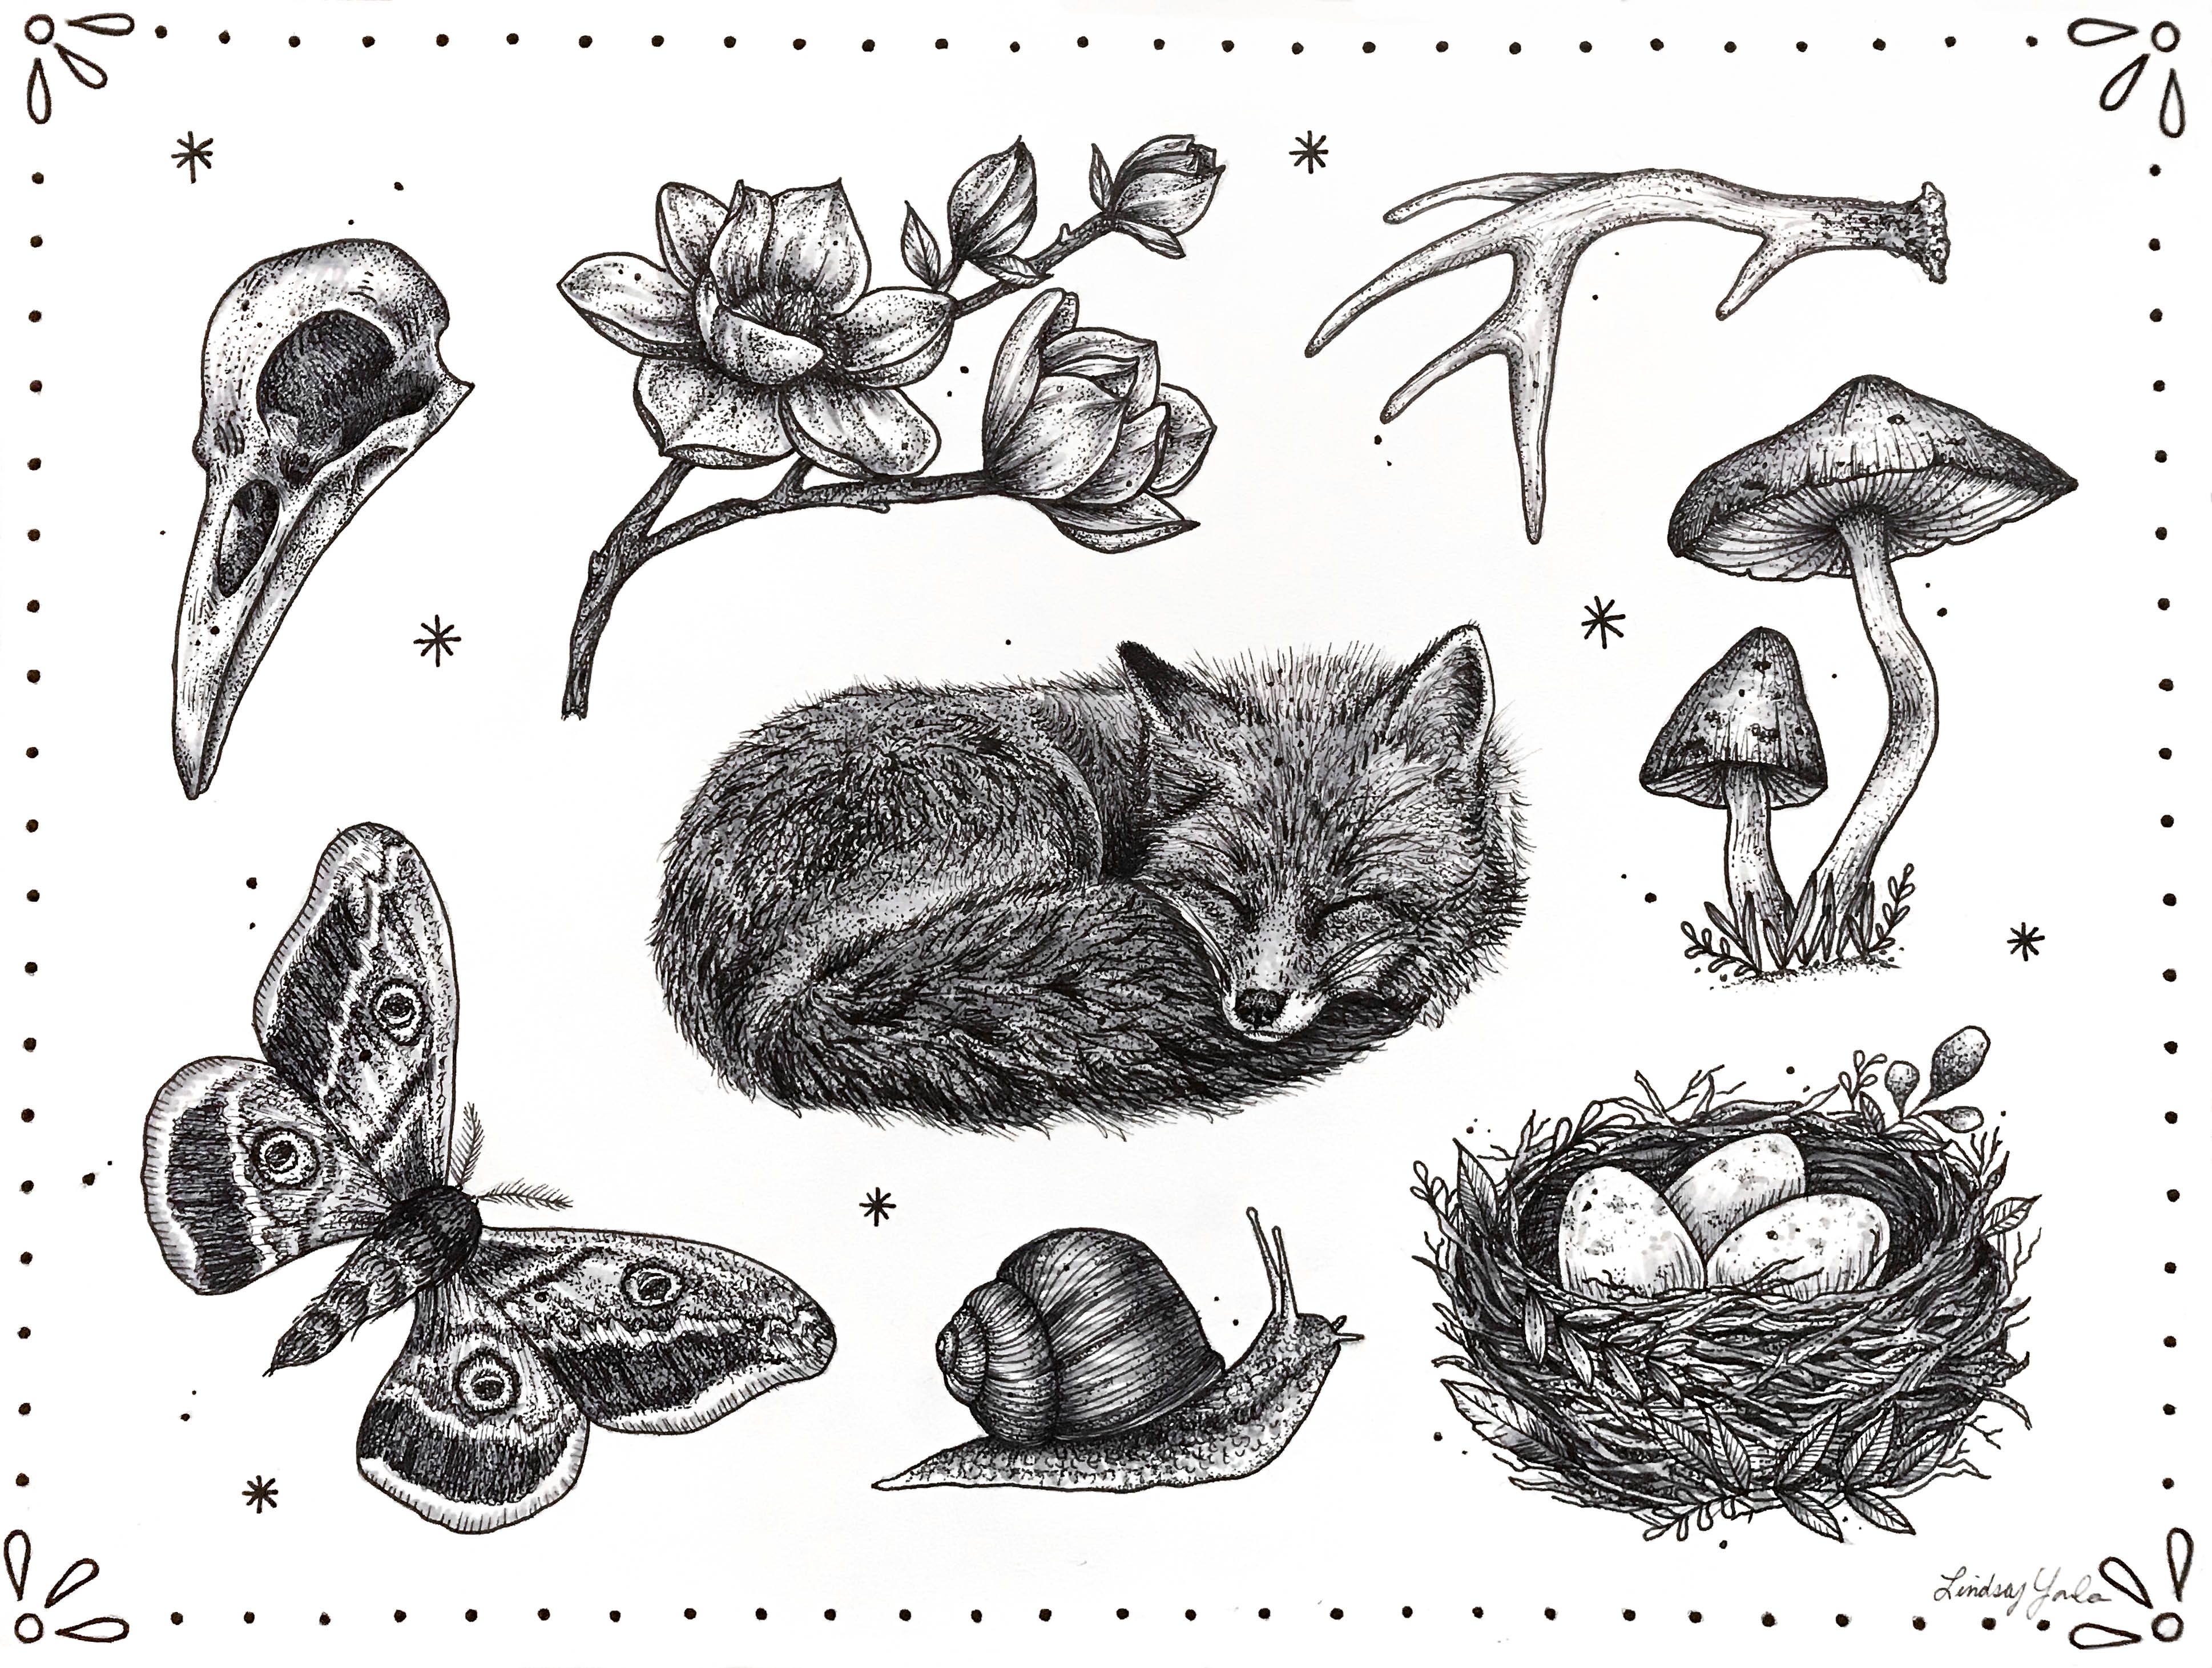 Flash style illustration of various woodland creatures